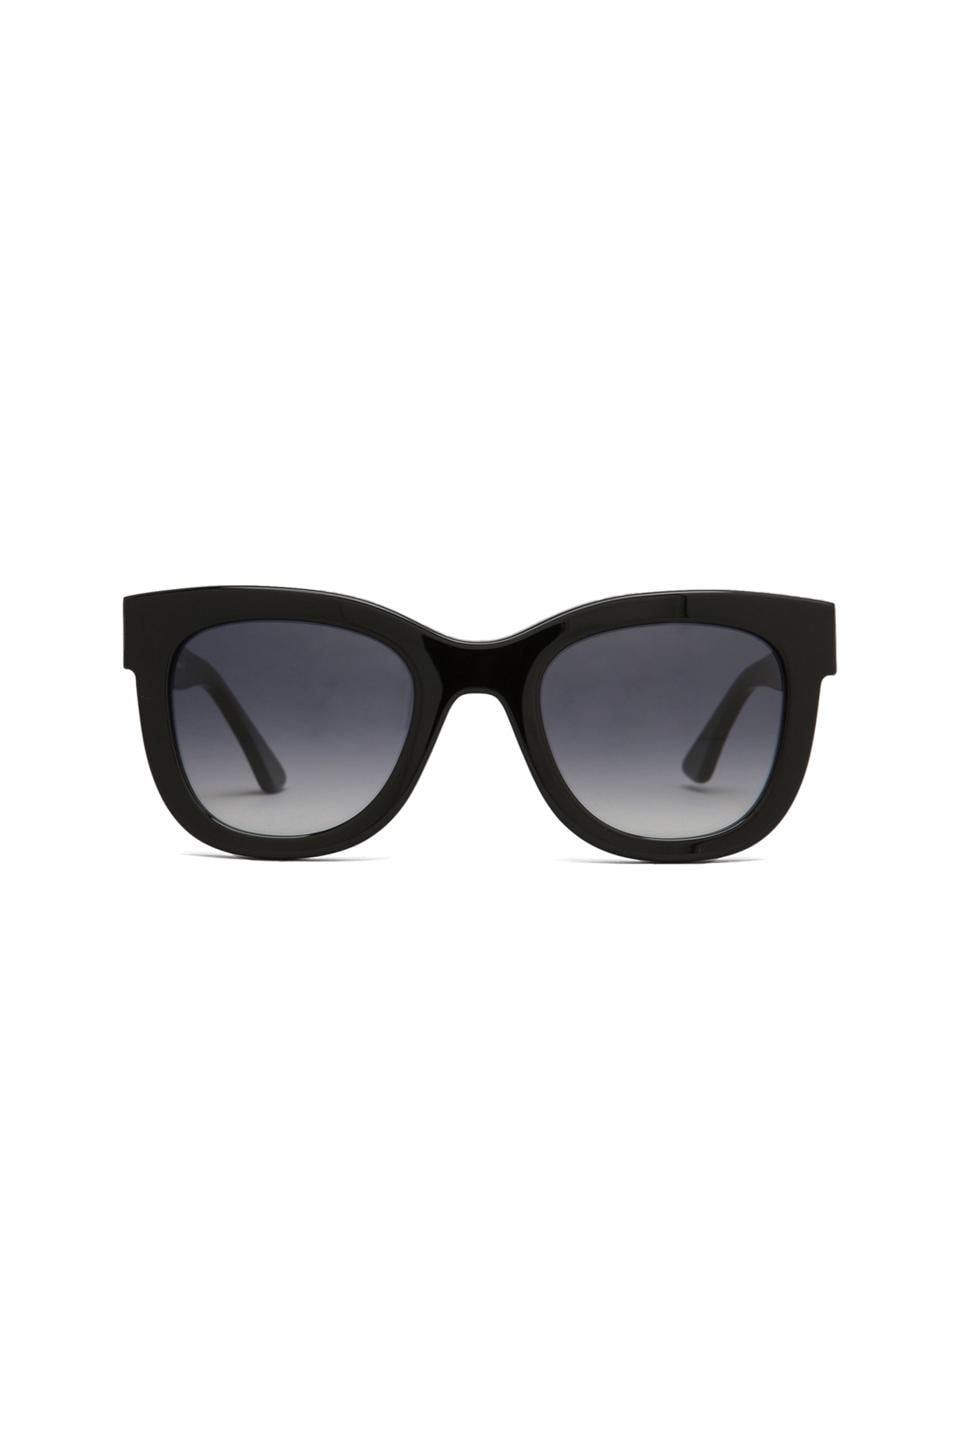 Thierry Lasry Obsessy Sunglasses in Black Plastic